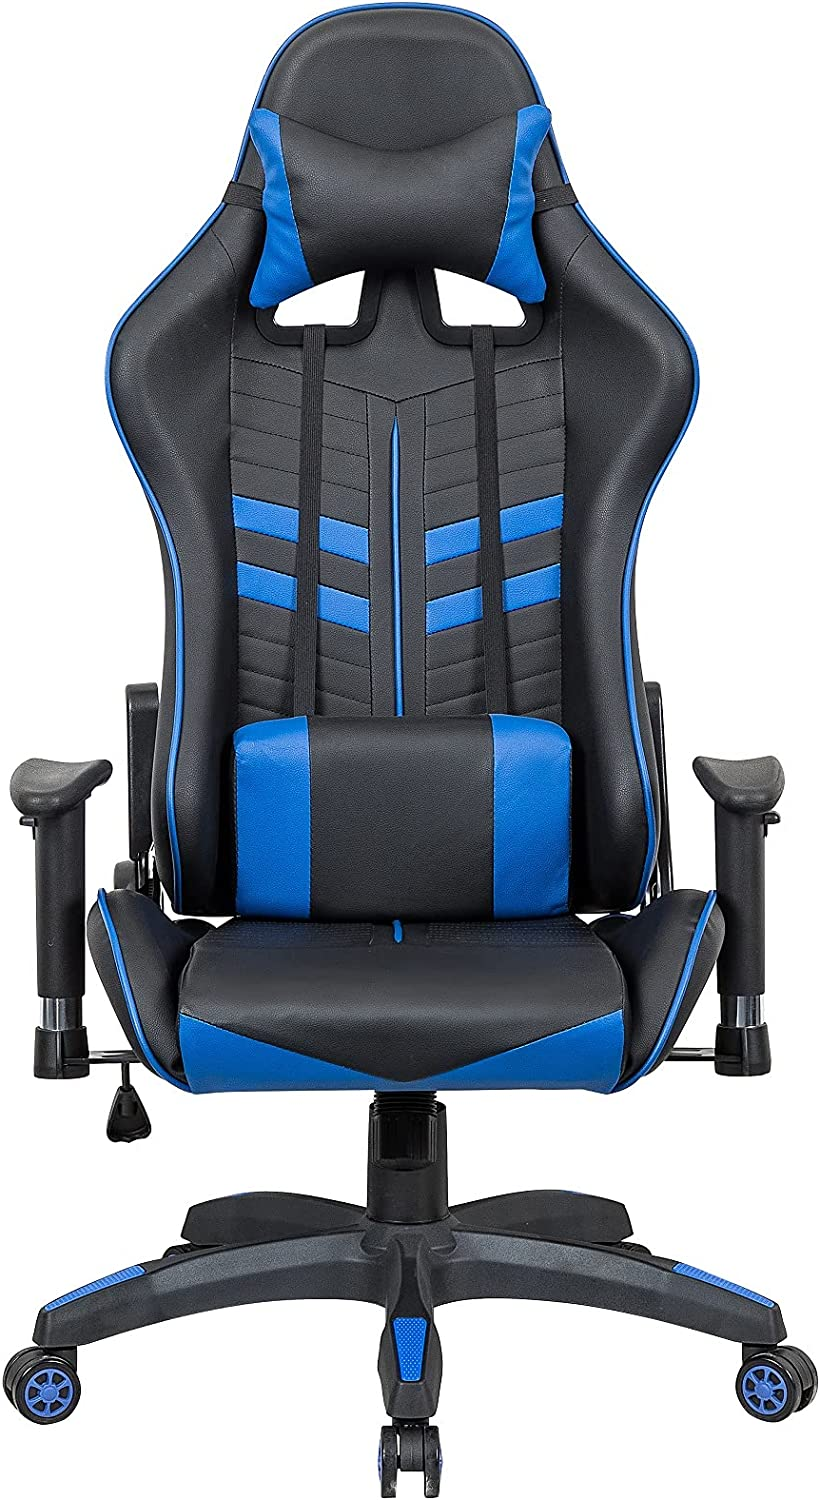 Thomasliving+ Gaming Chair- Ergonomics Computer Tulsa San Diego Mall Mall wit Office Chair